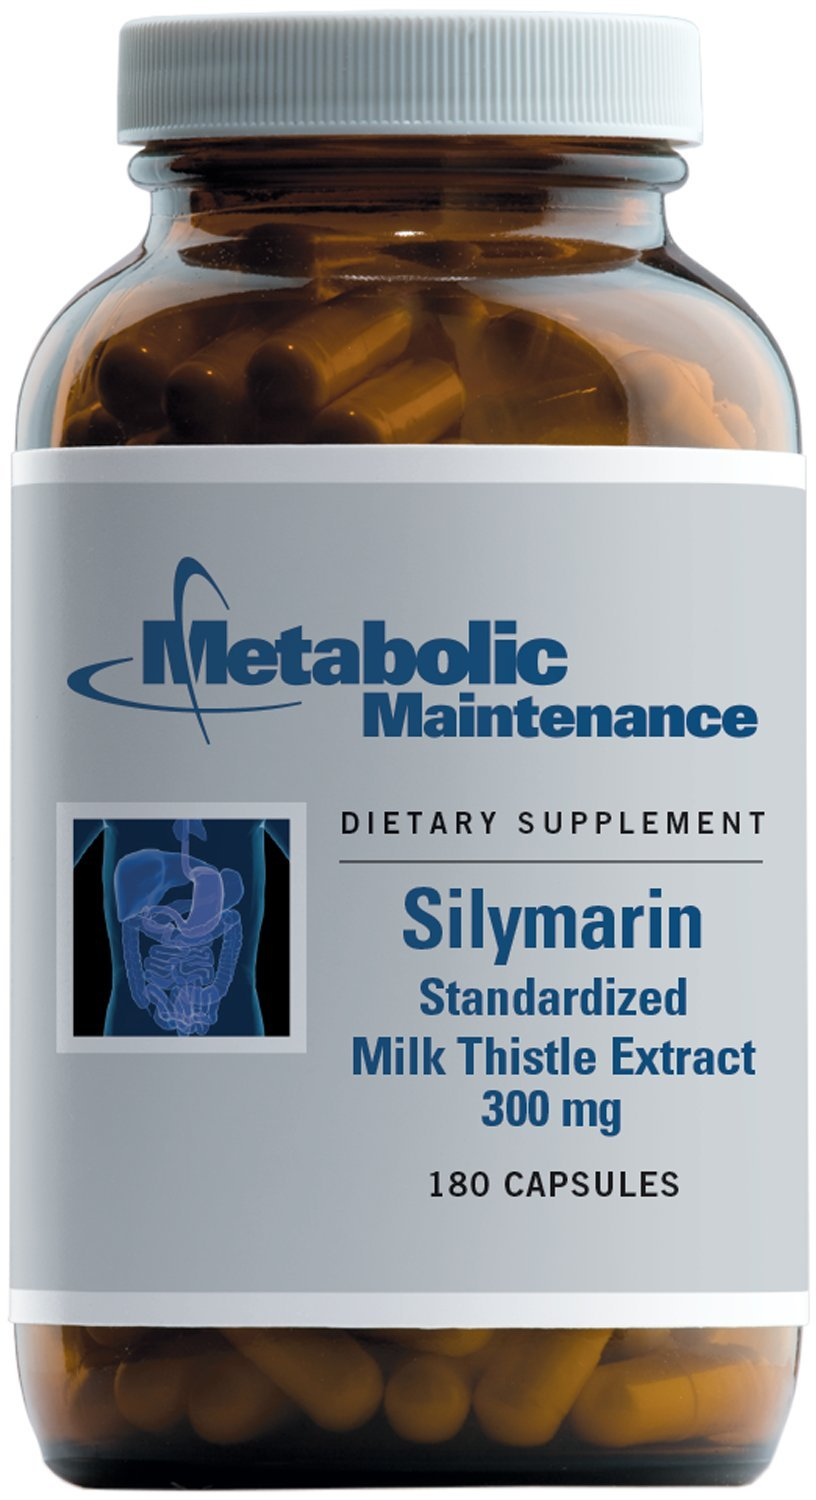 Metabolic Maintenance Silymarin – 300 Milligrams Standardized 80 Milk Thistle for Liver Support 180 Capsules